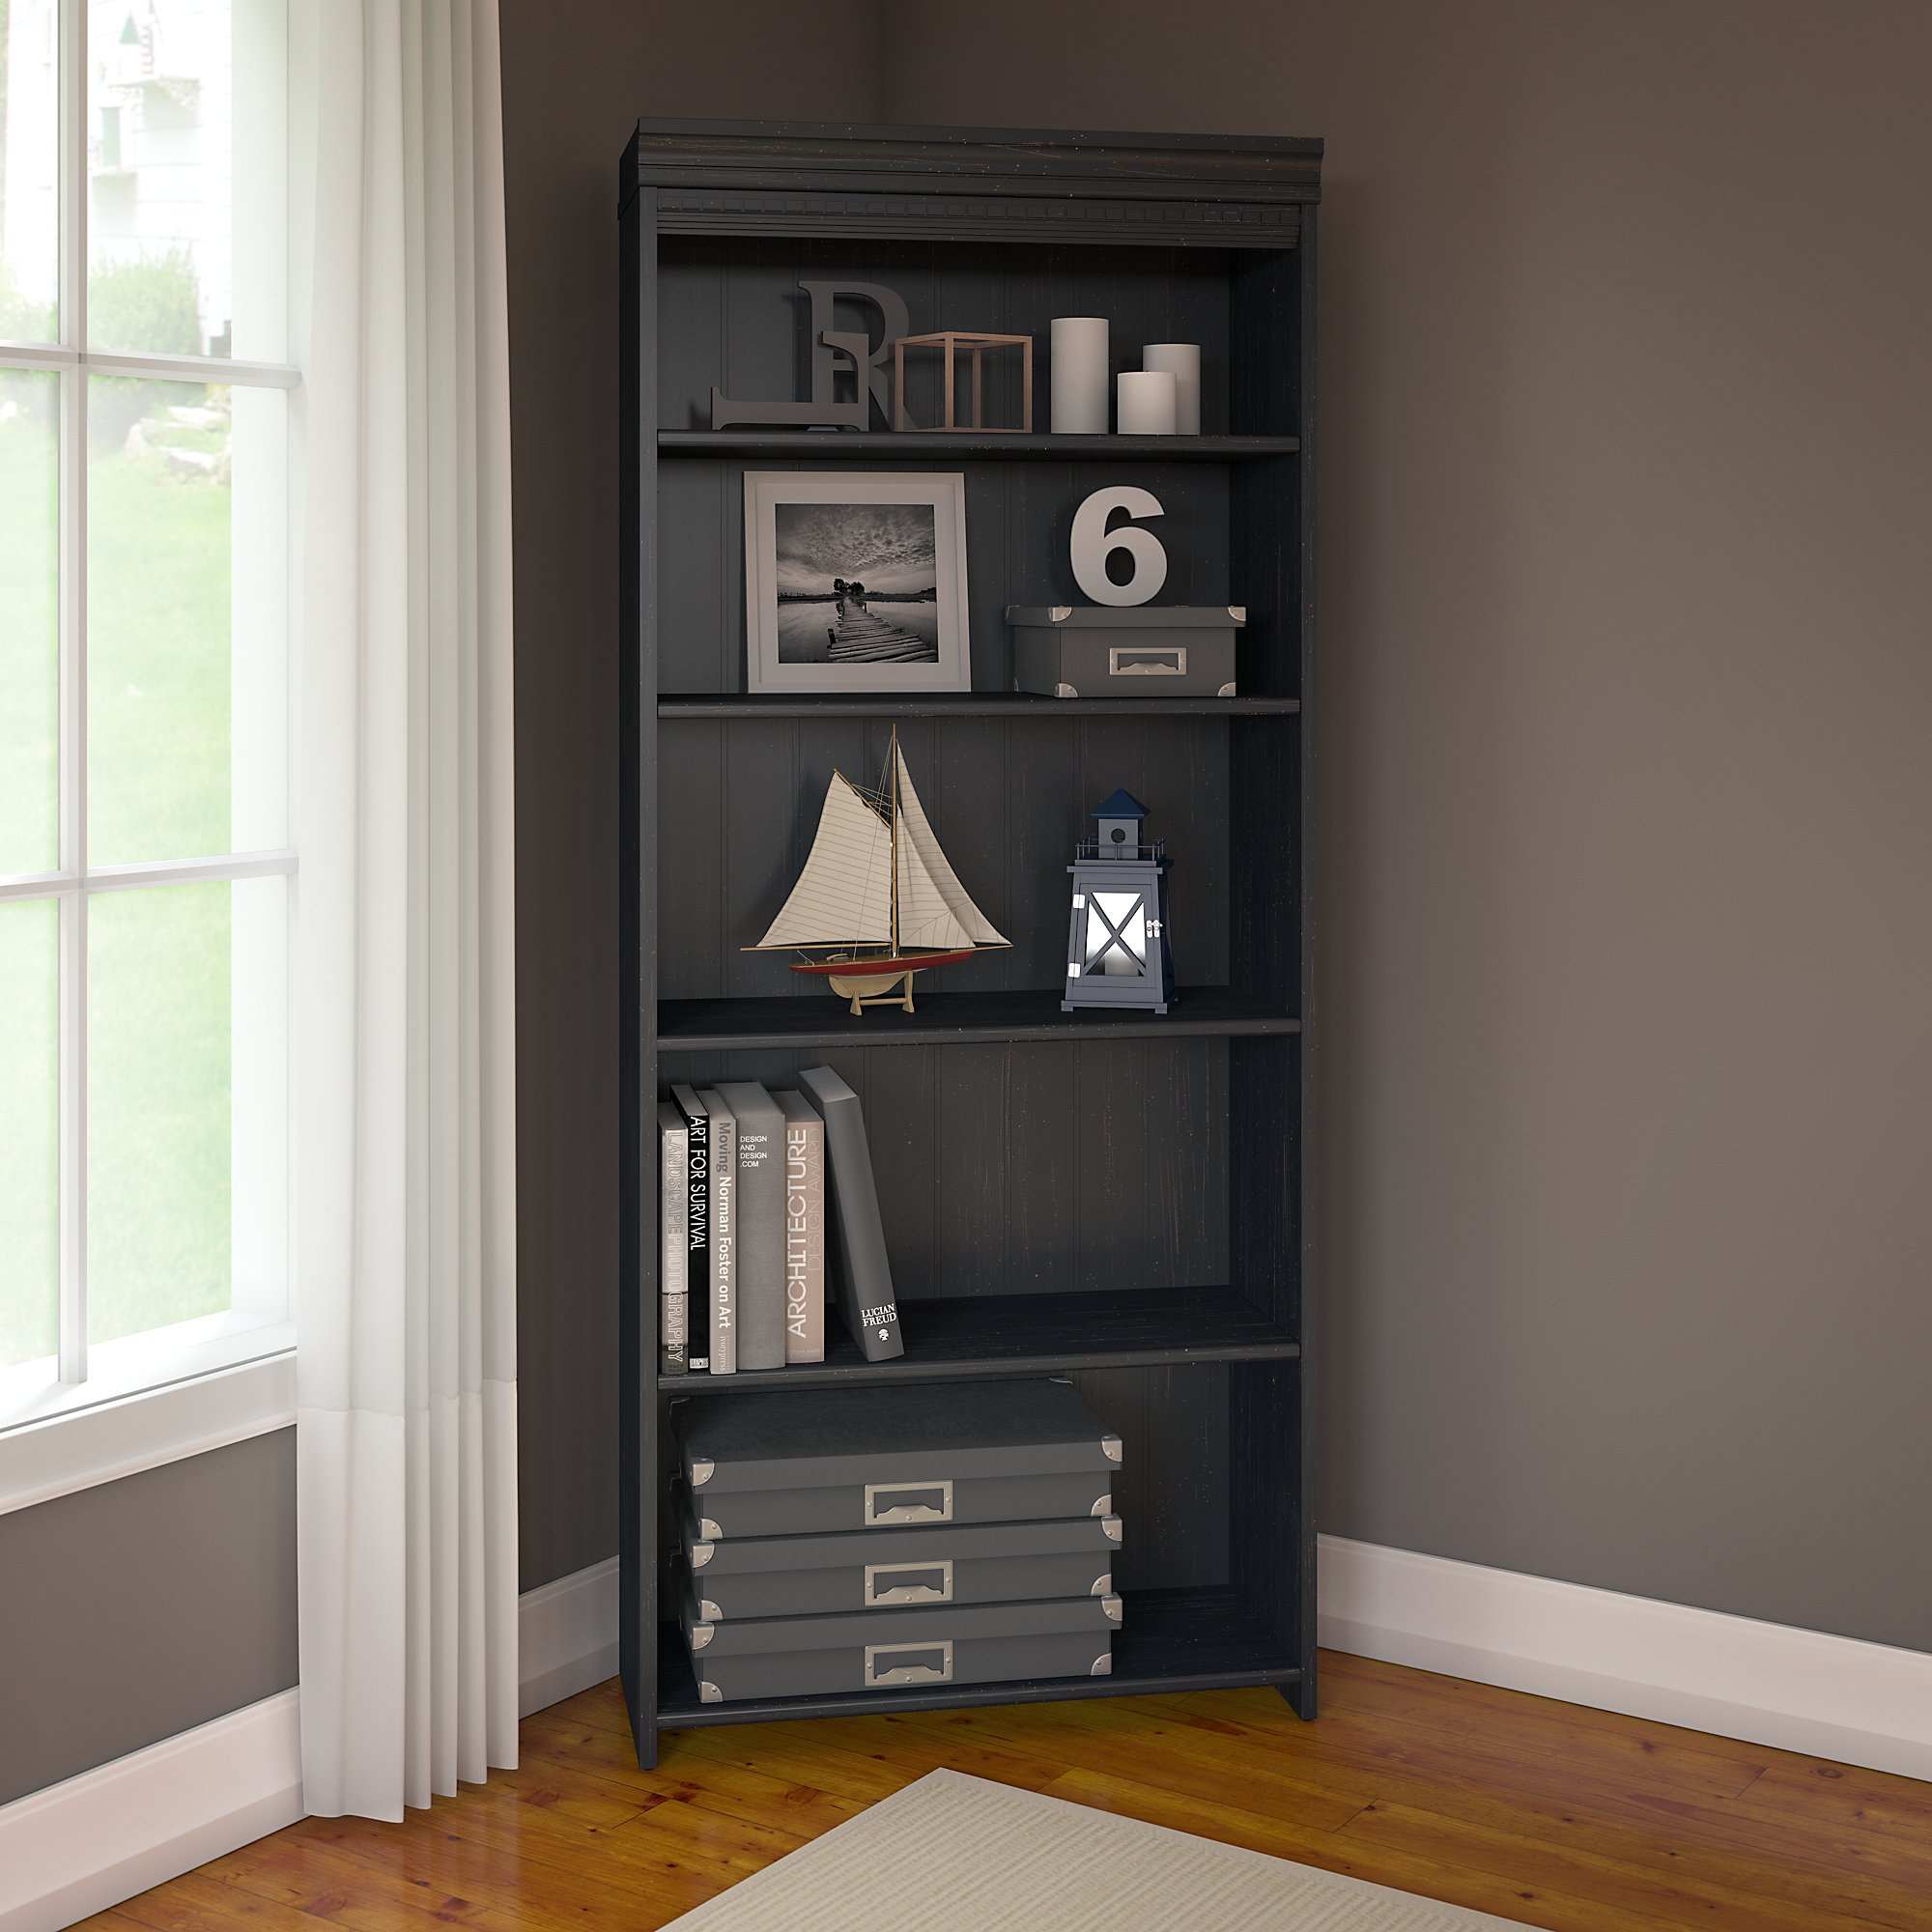 Bush Furniture Fairview 5 Shelf Bookcase in Antique Black